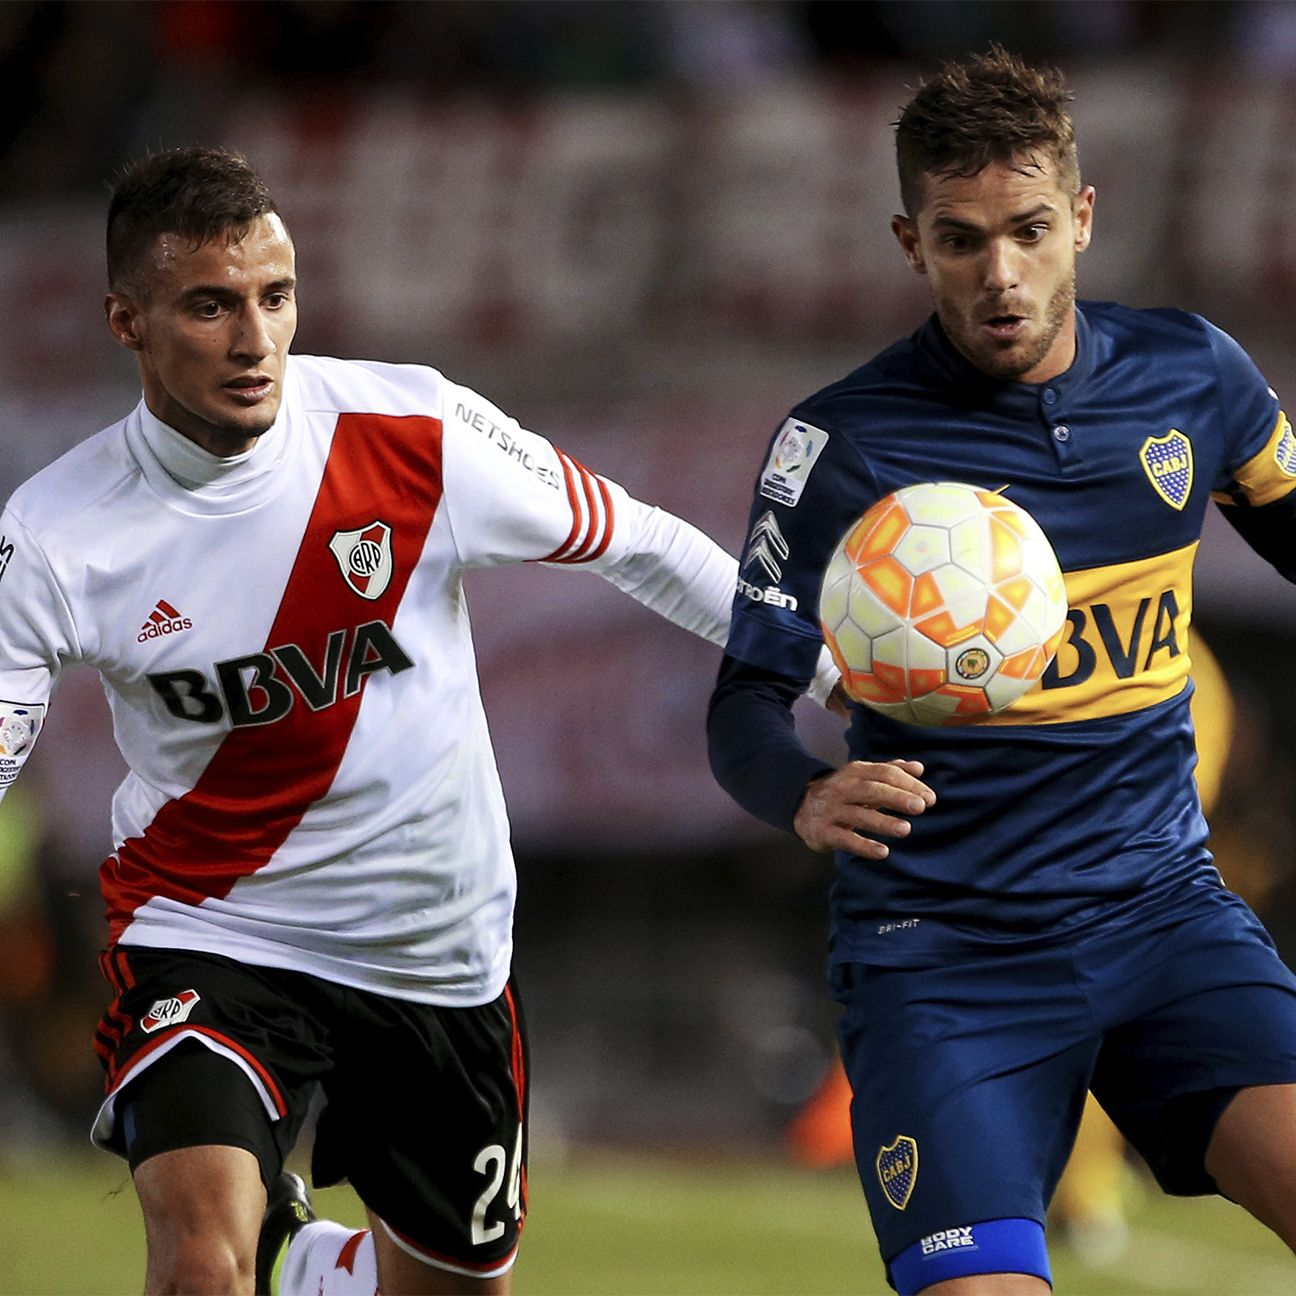 River Plate will be looking to protect their 1-0 lead over Fernando Gago's Boca Juniors in their Copa Libertadores last 16 second leg.